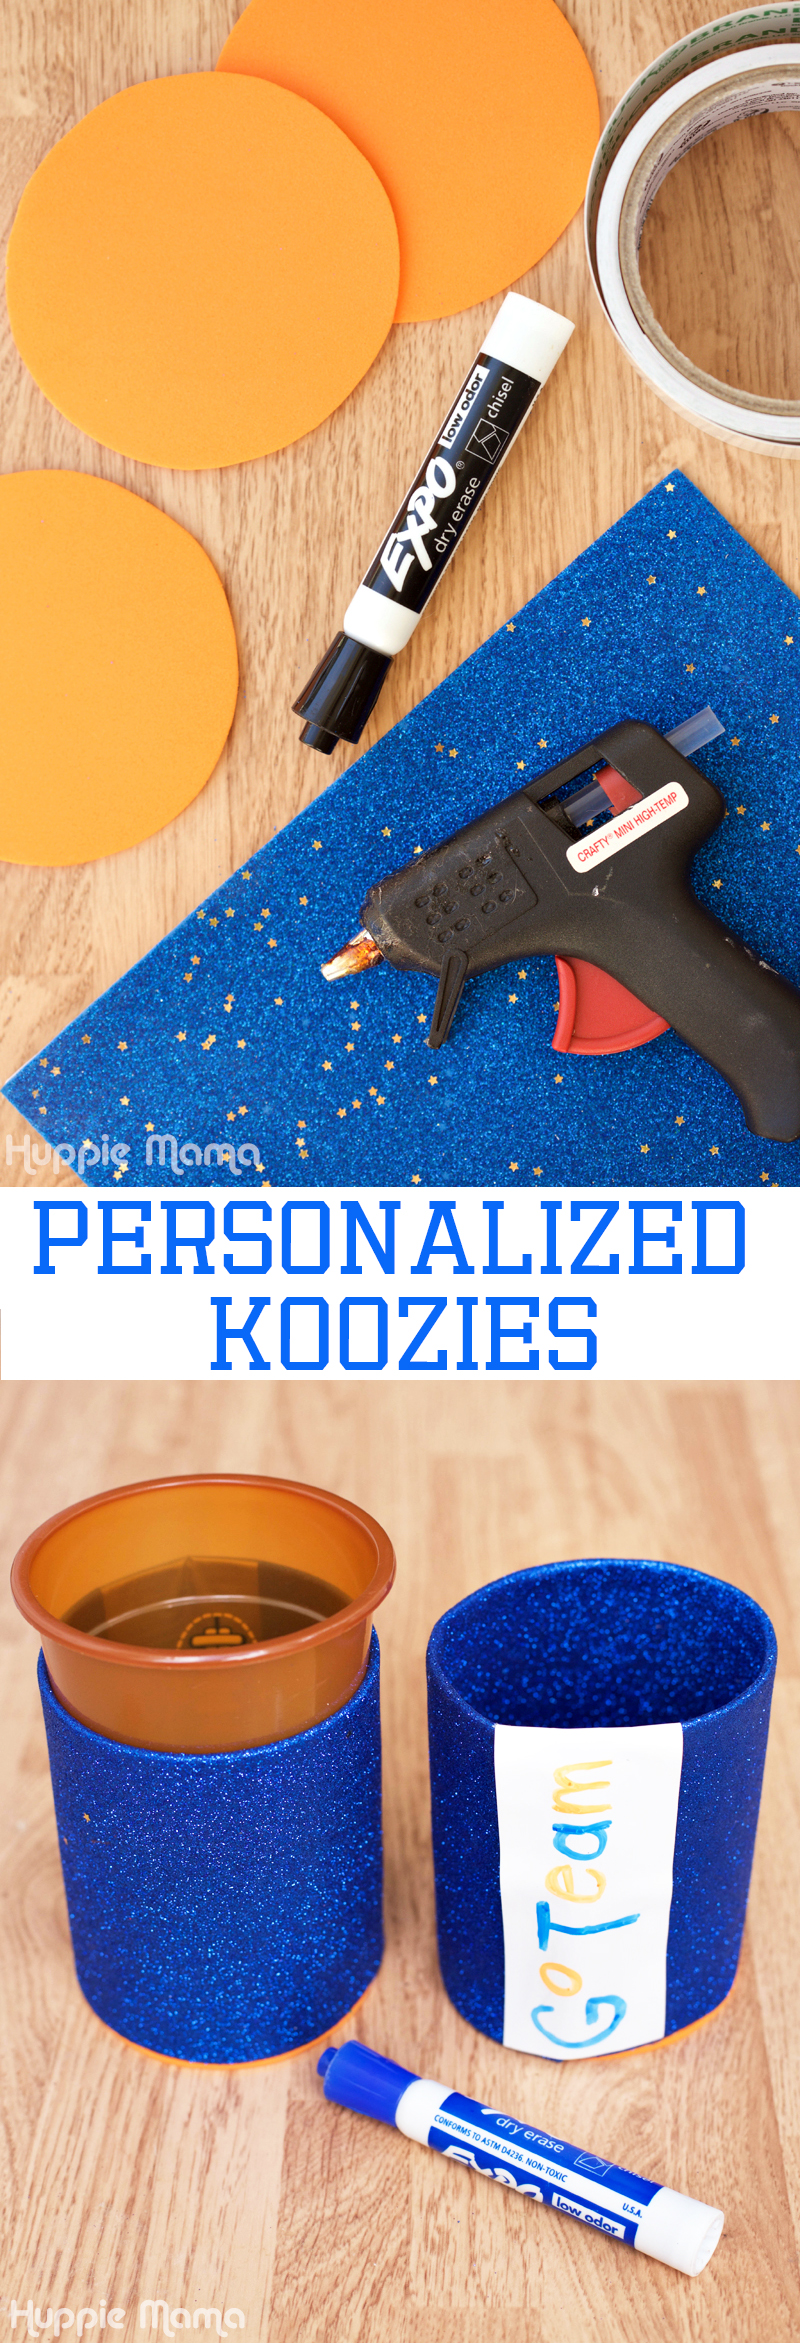 Koozies Tutorial